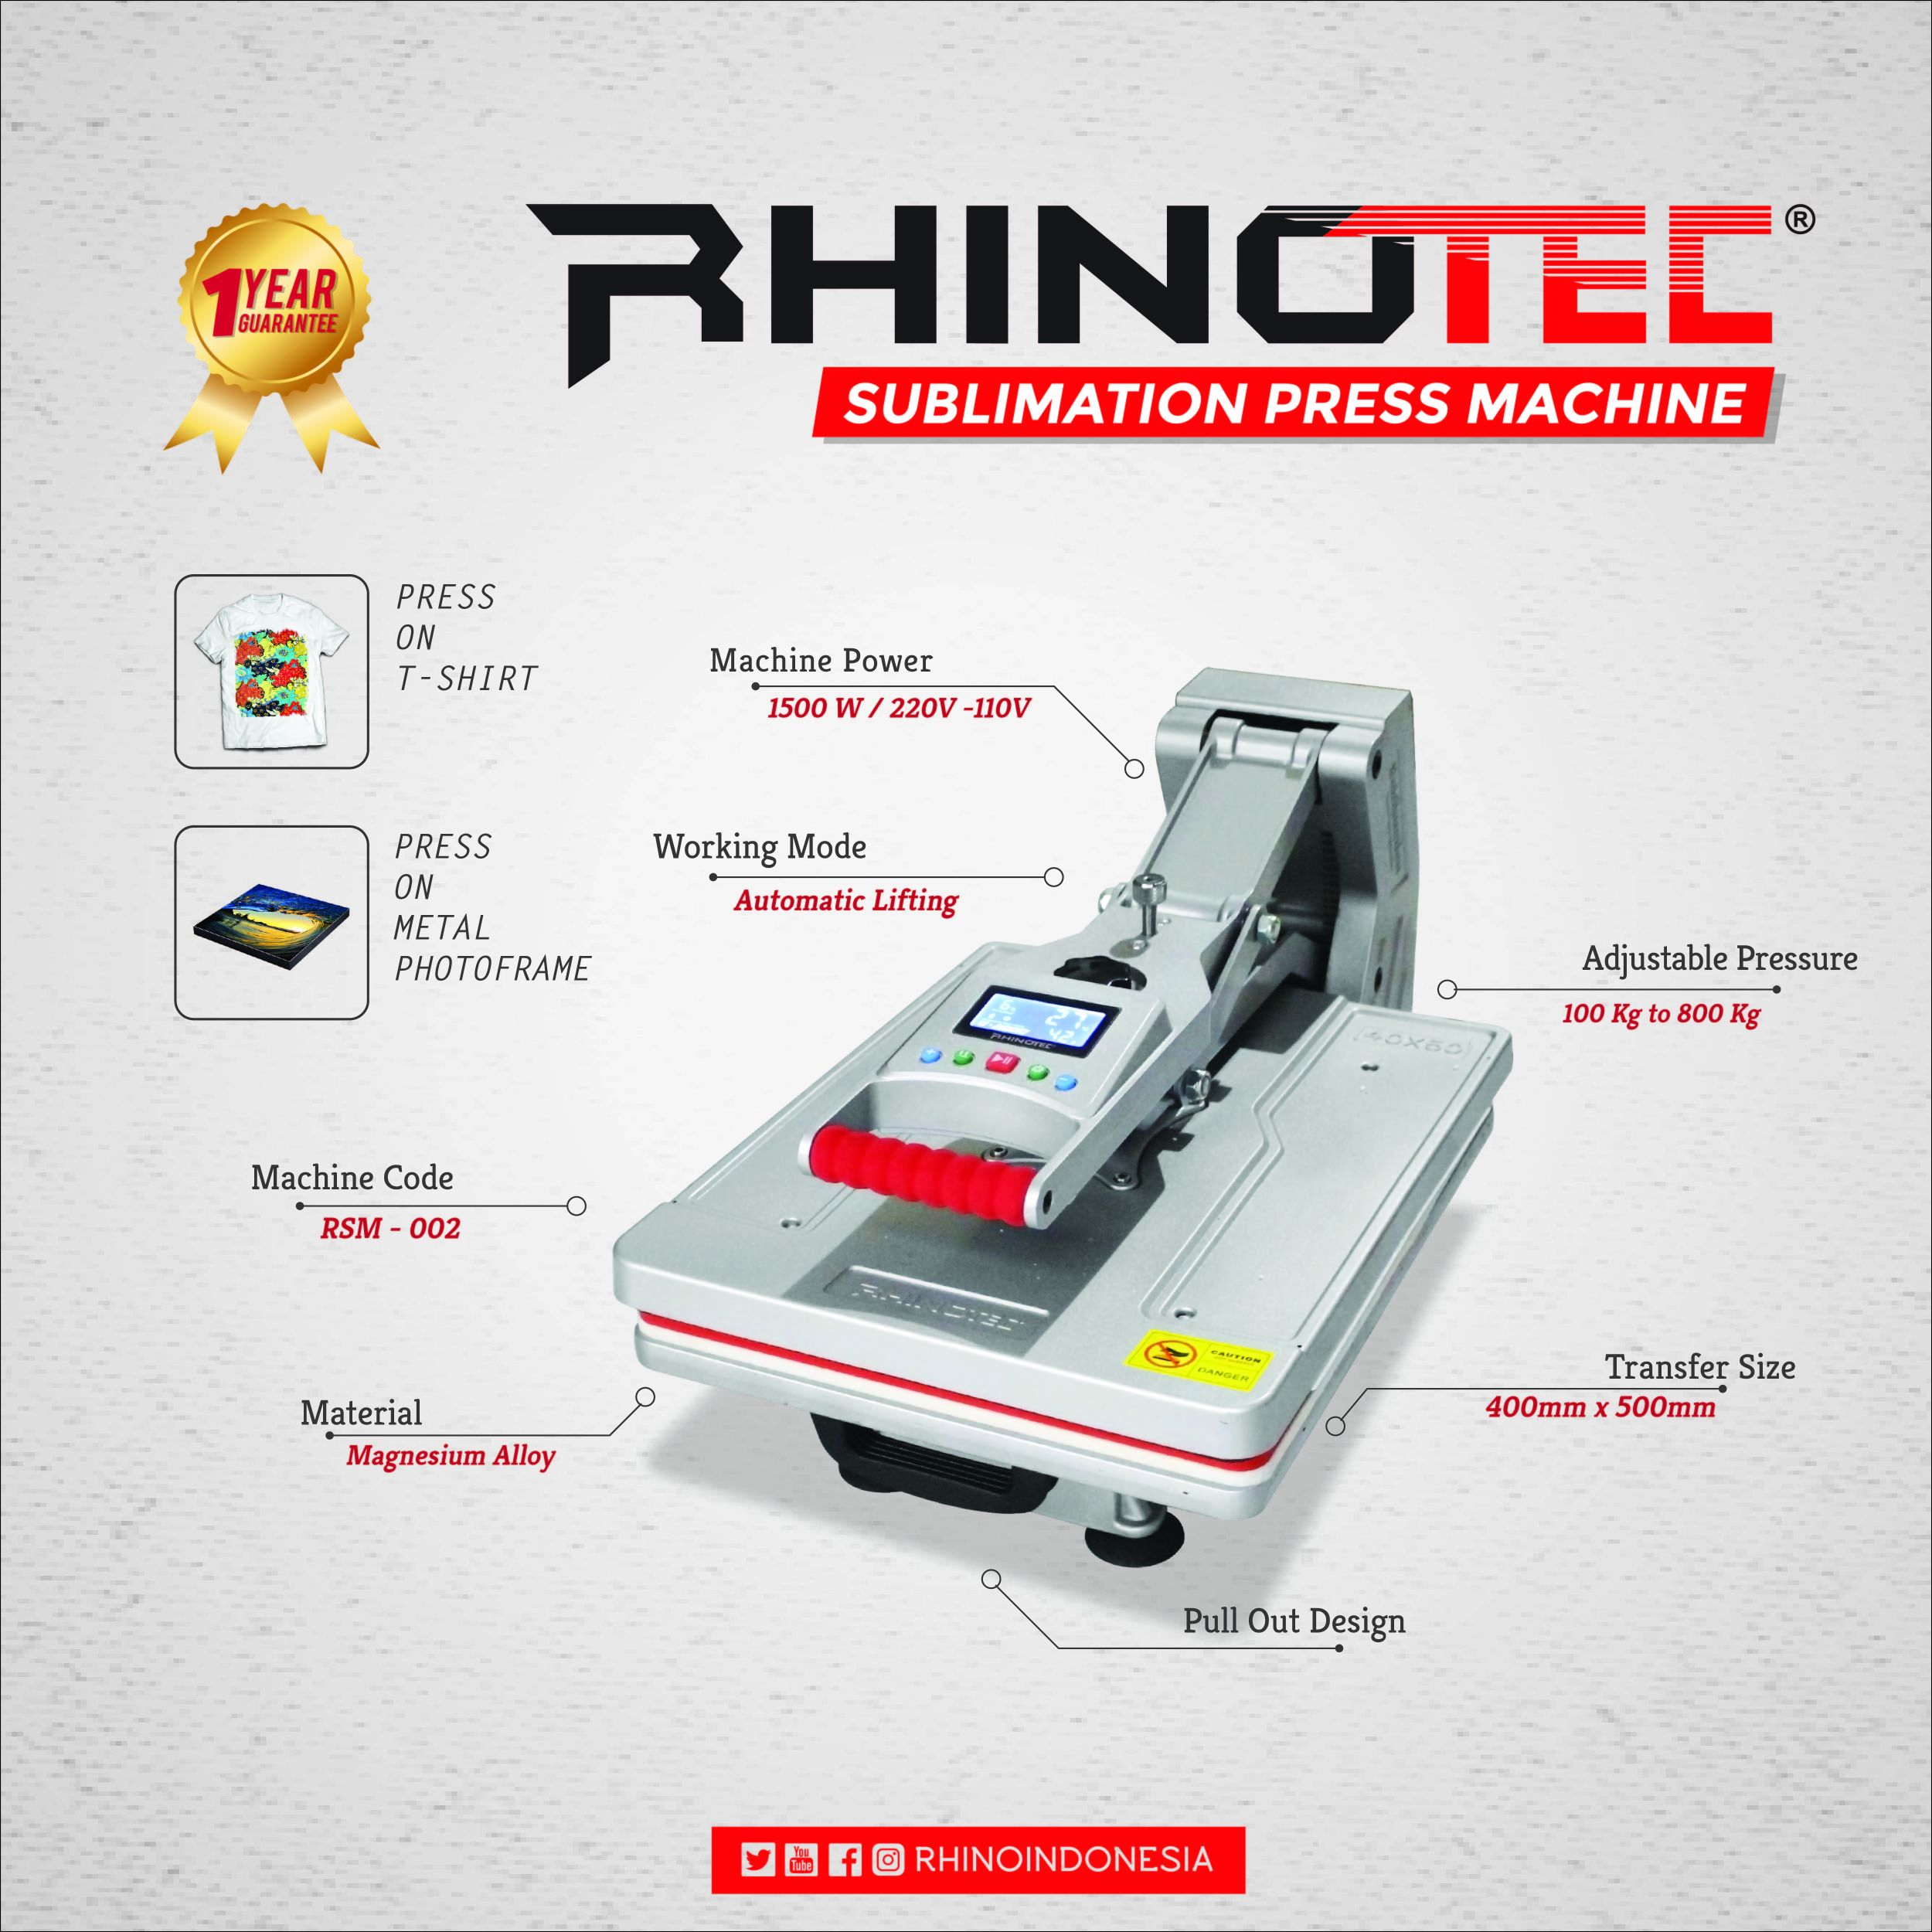 3 Jenis Mesin Press Sublime Terbaru Rhinotec